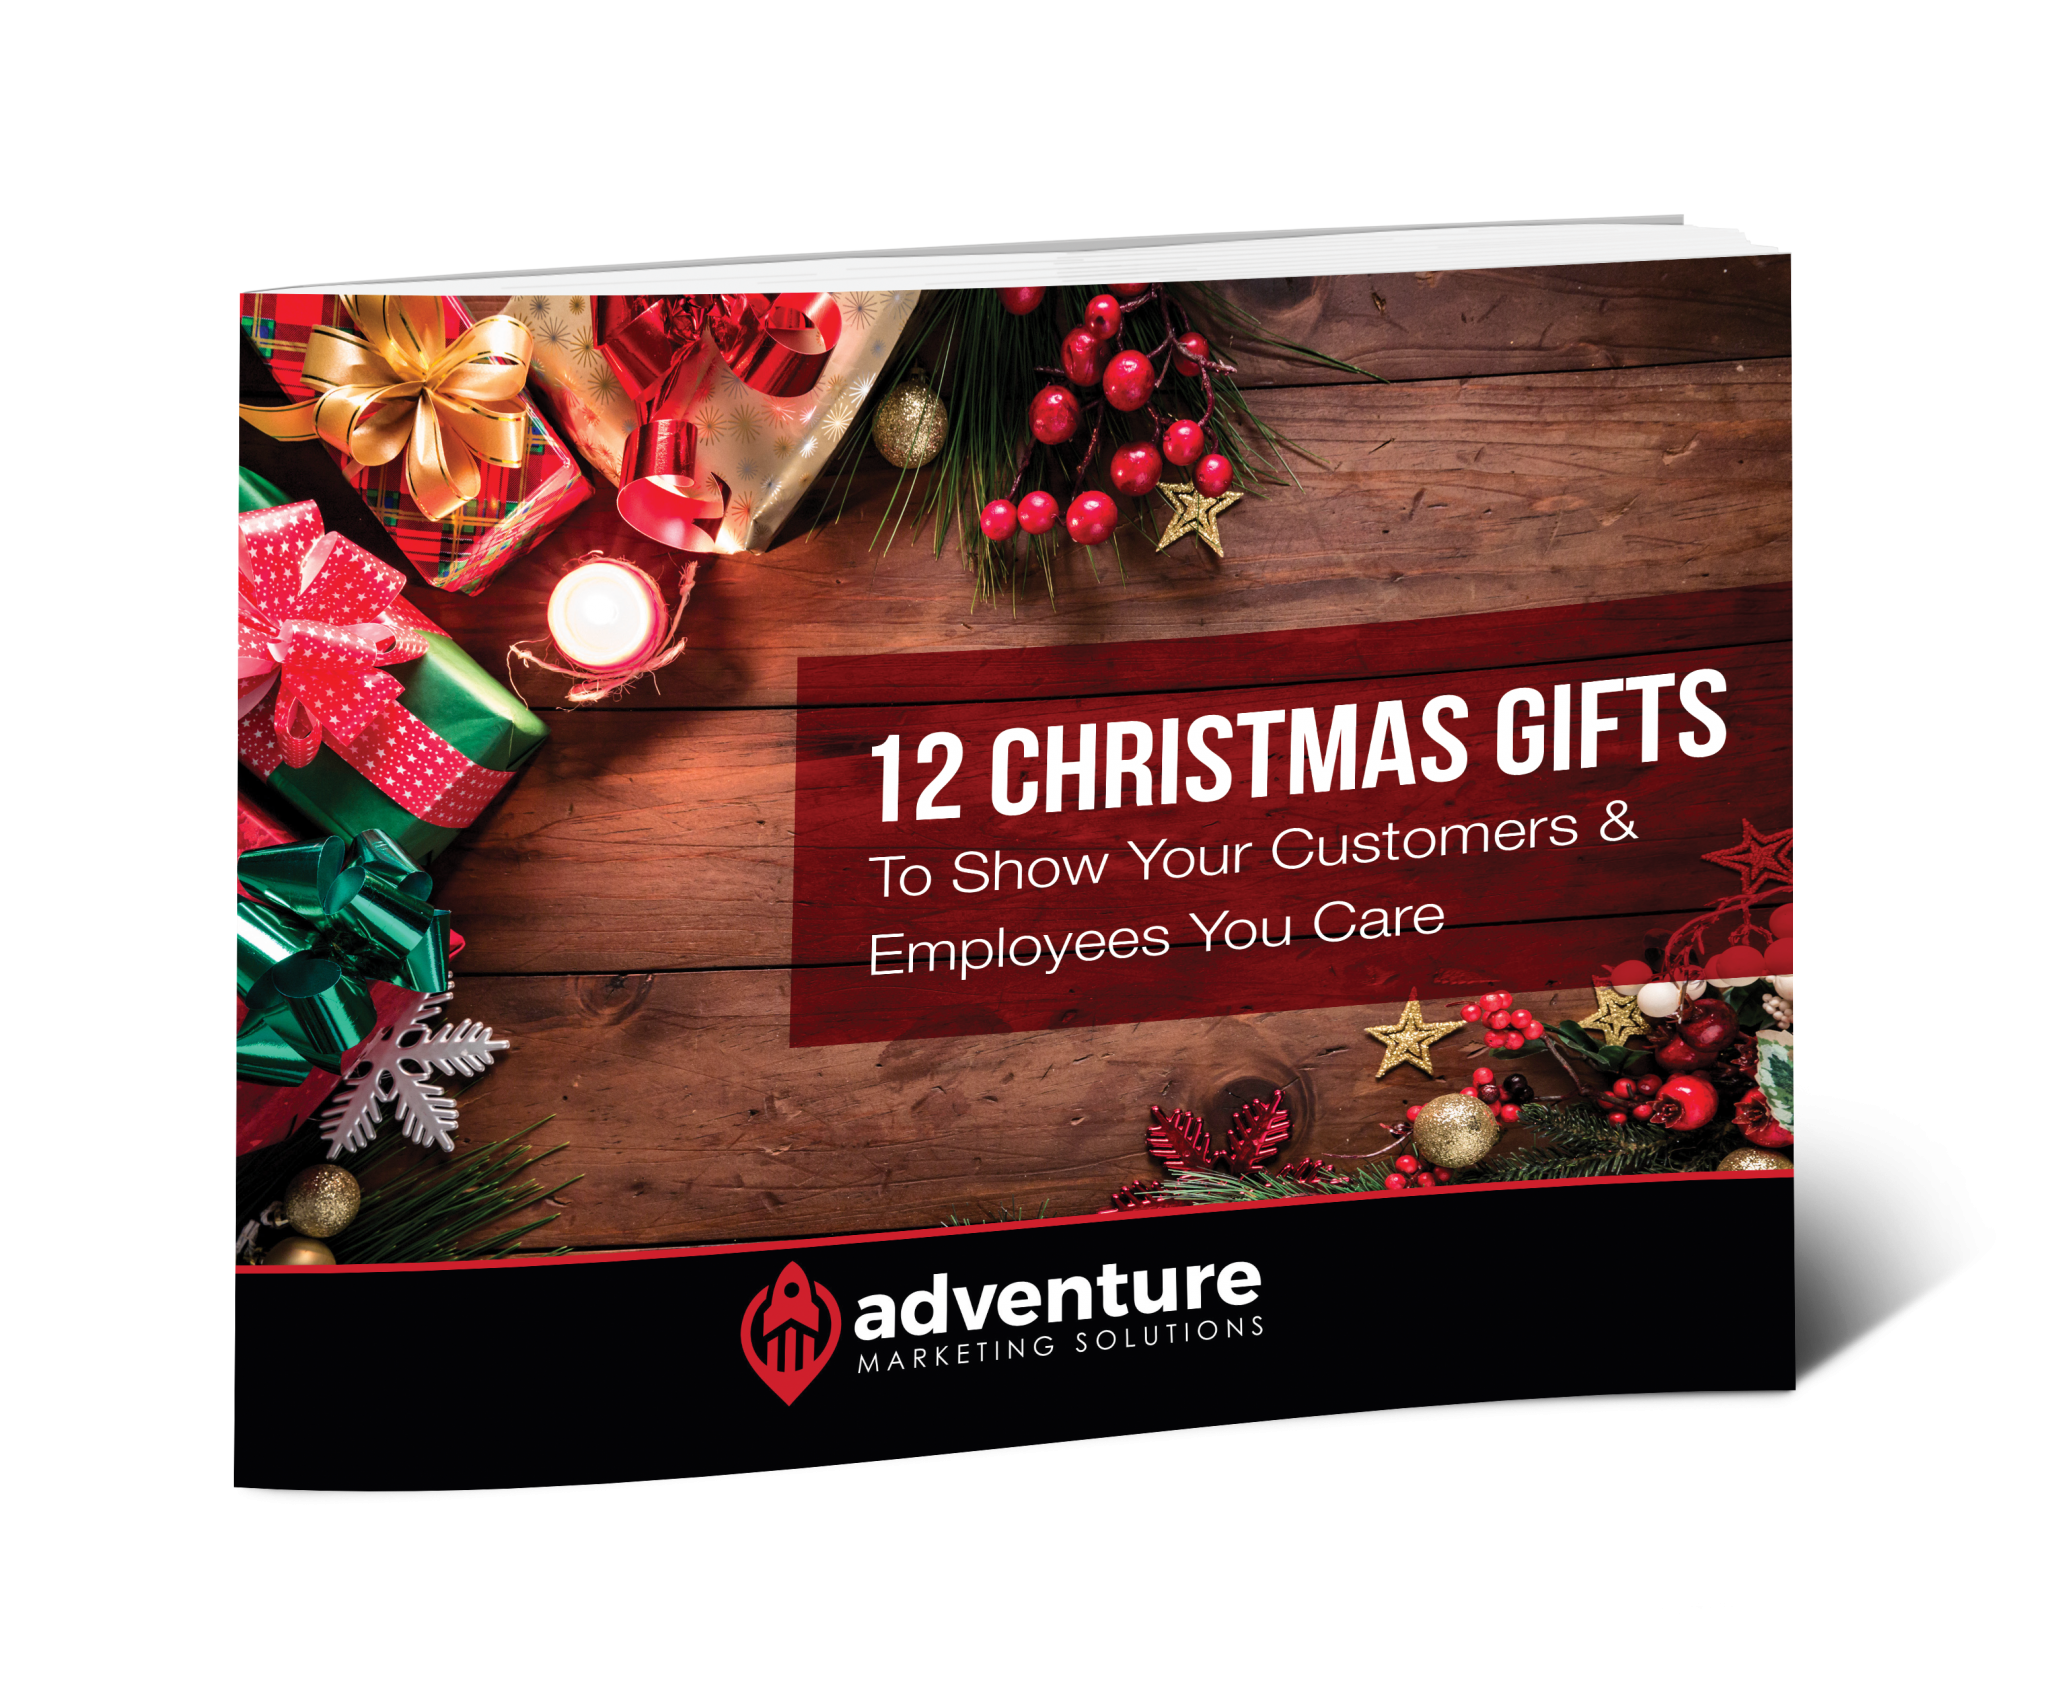 12 Christmas Gifts to Show Your Customers & Employees You Care